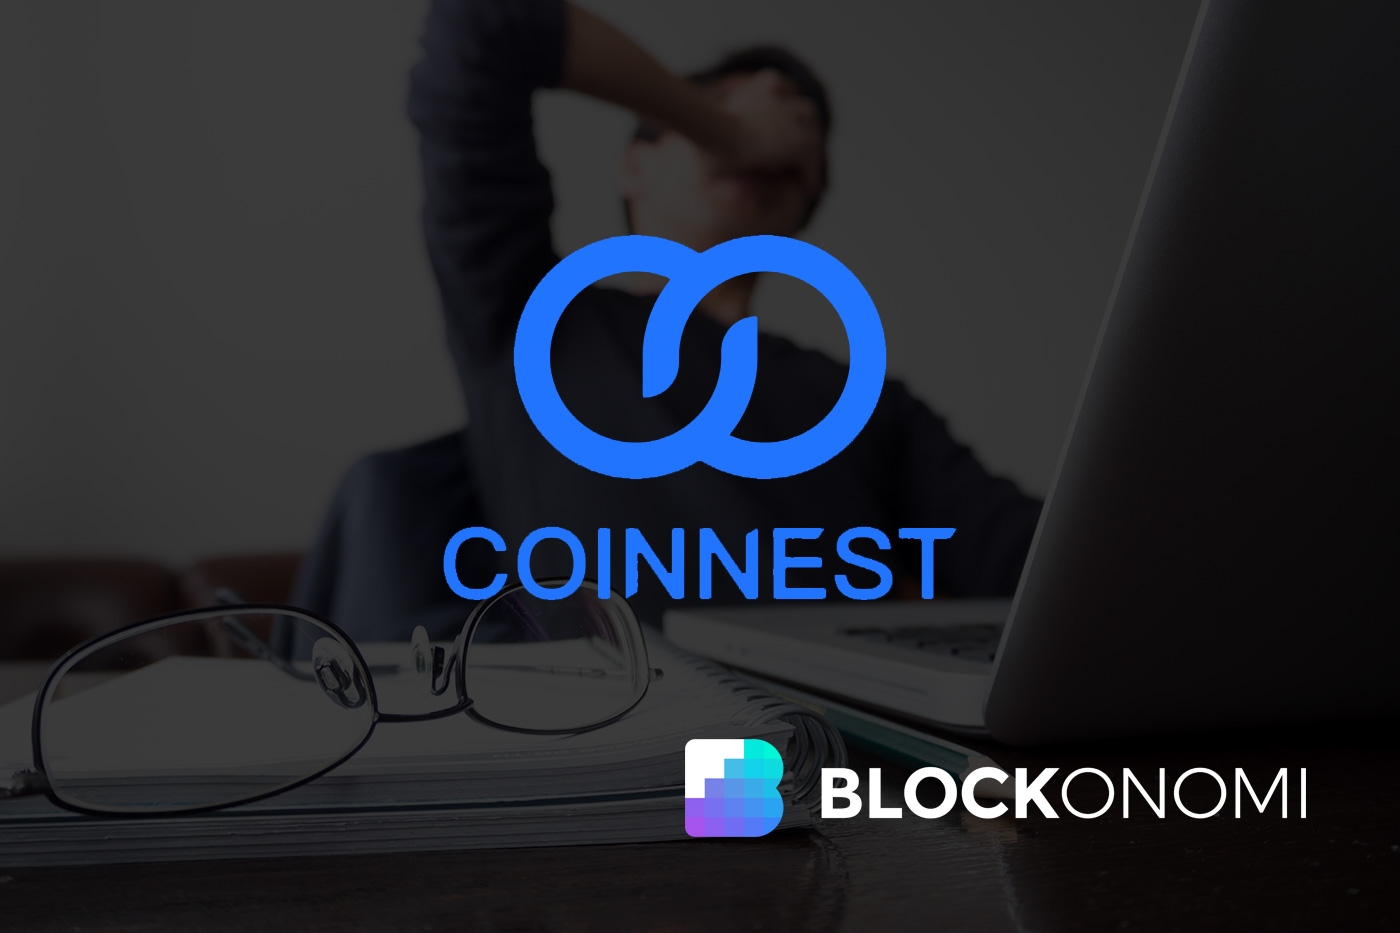 Coinnest Loses $5 Million in Accidental Bitcoin Airdrop